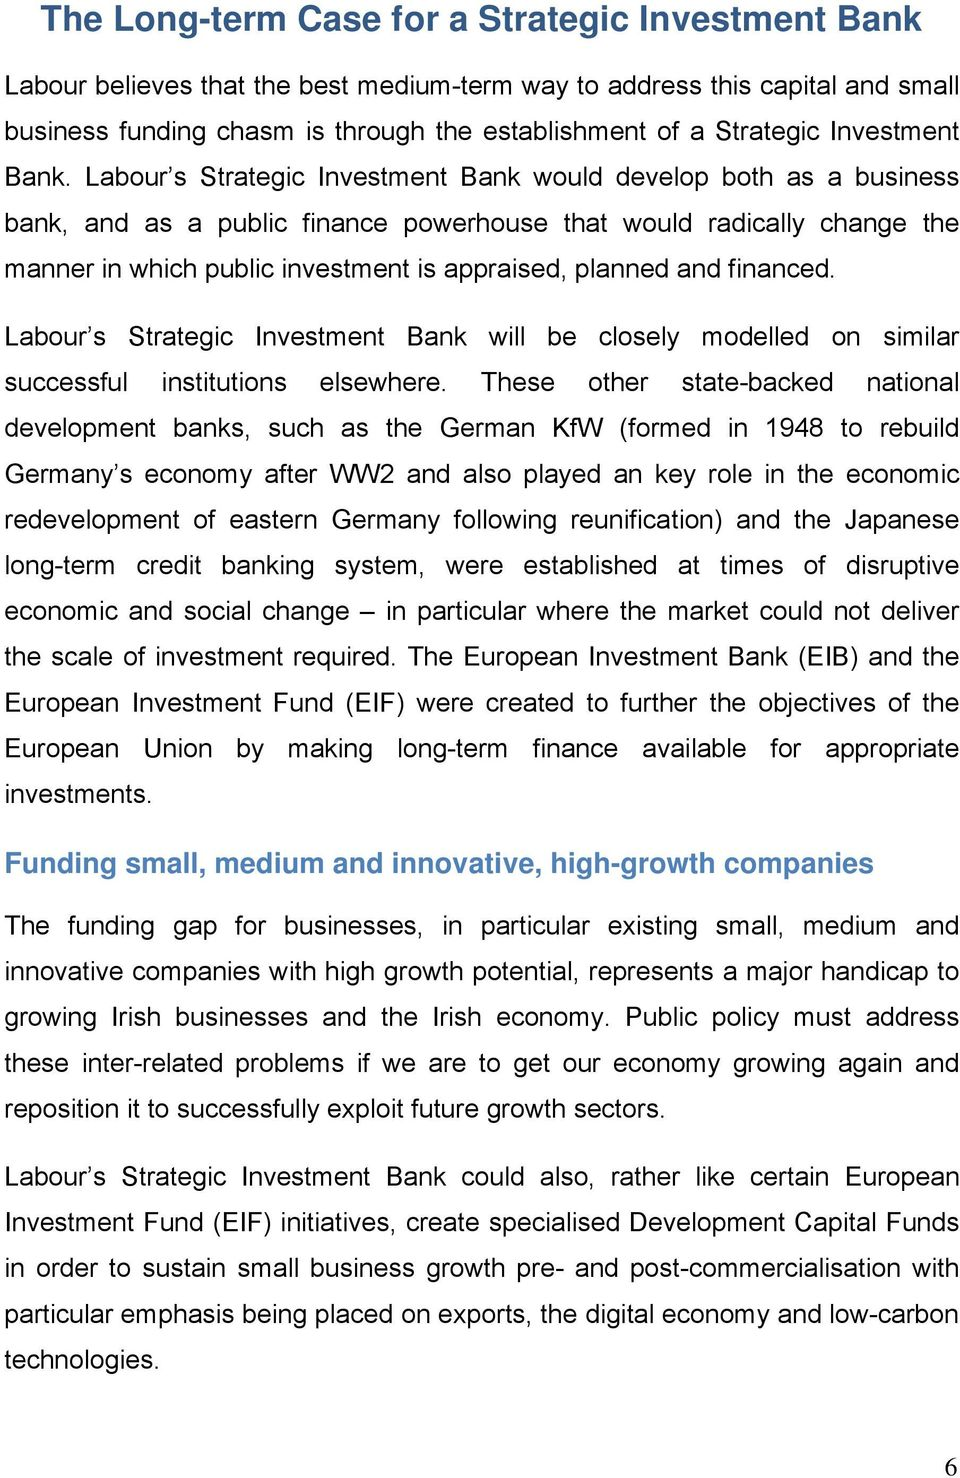 Labour s Strategic Investment Bank would develop both as a business bank, and as a public finance powerhouse that would radically change the manner in which public investment is appraised, planned